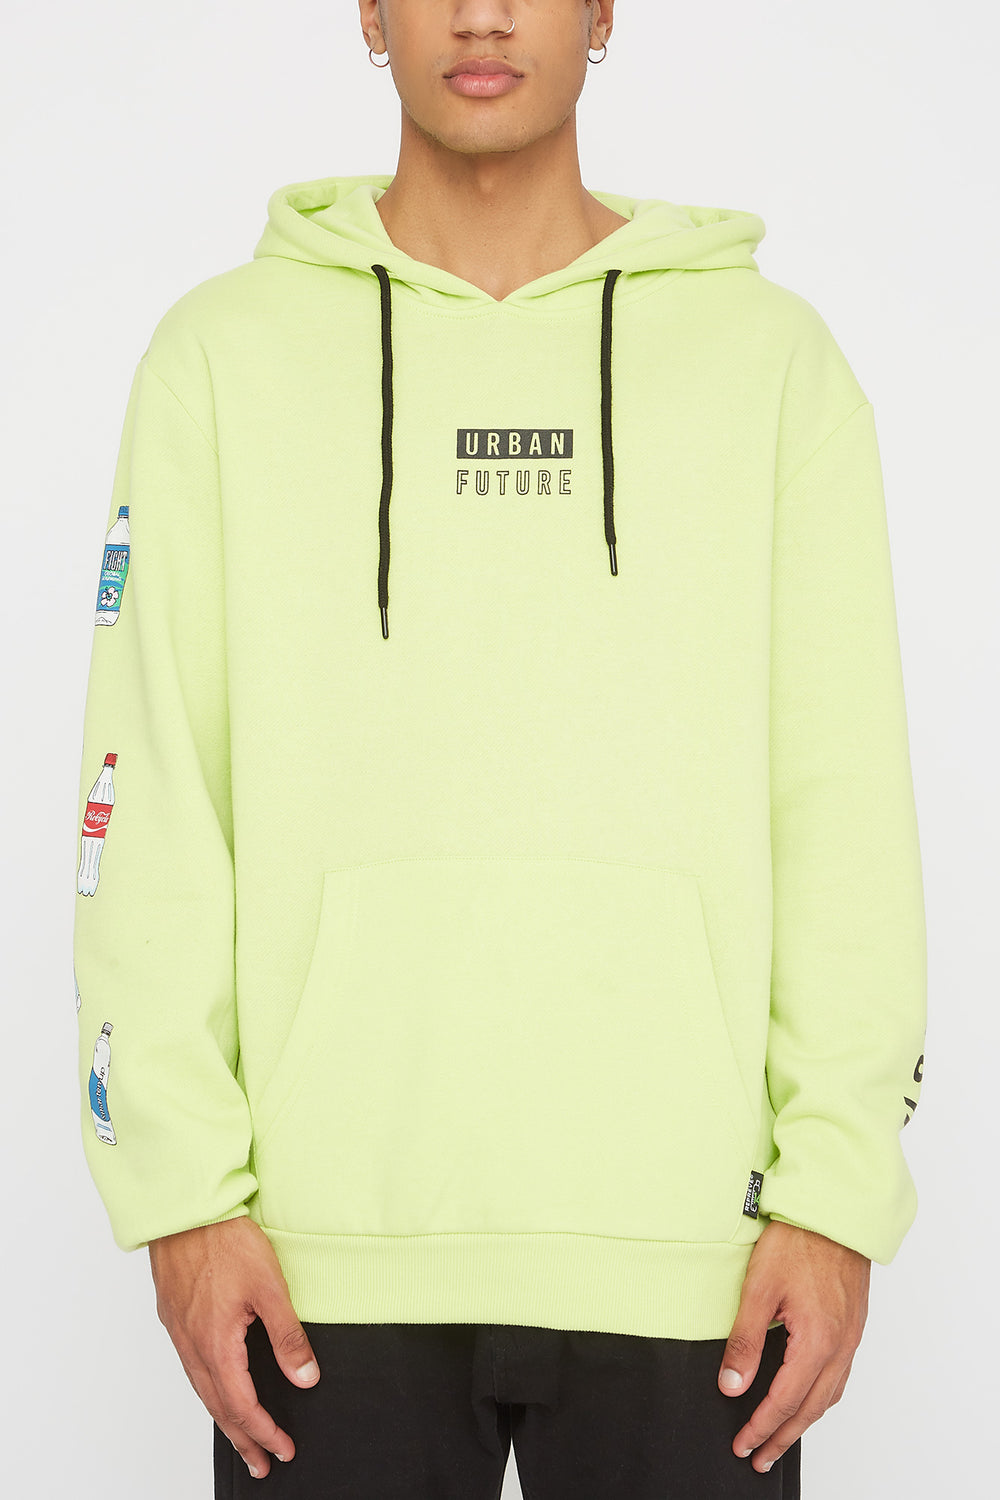 REPREVE® Mens Eco-Friendly Hoodie Neon Green